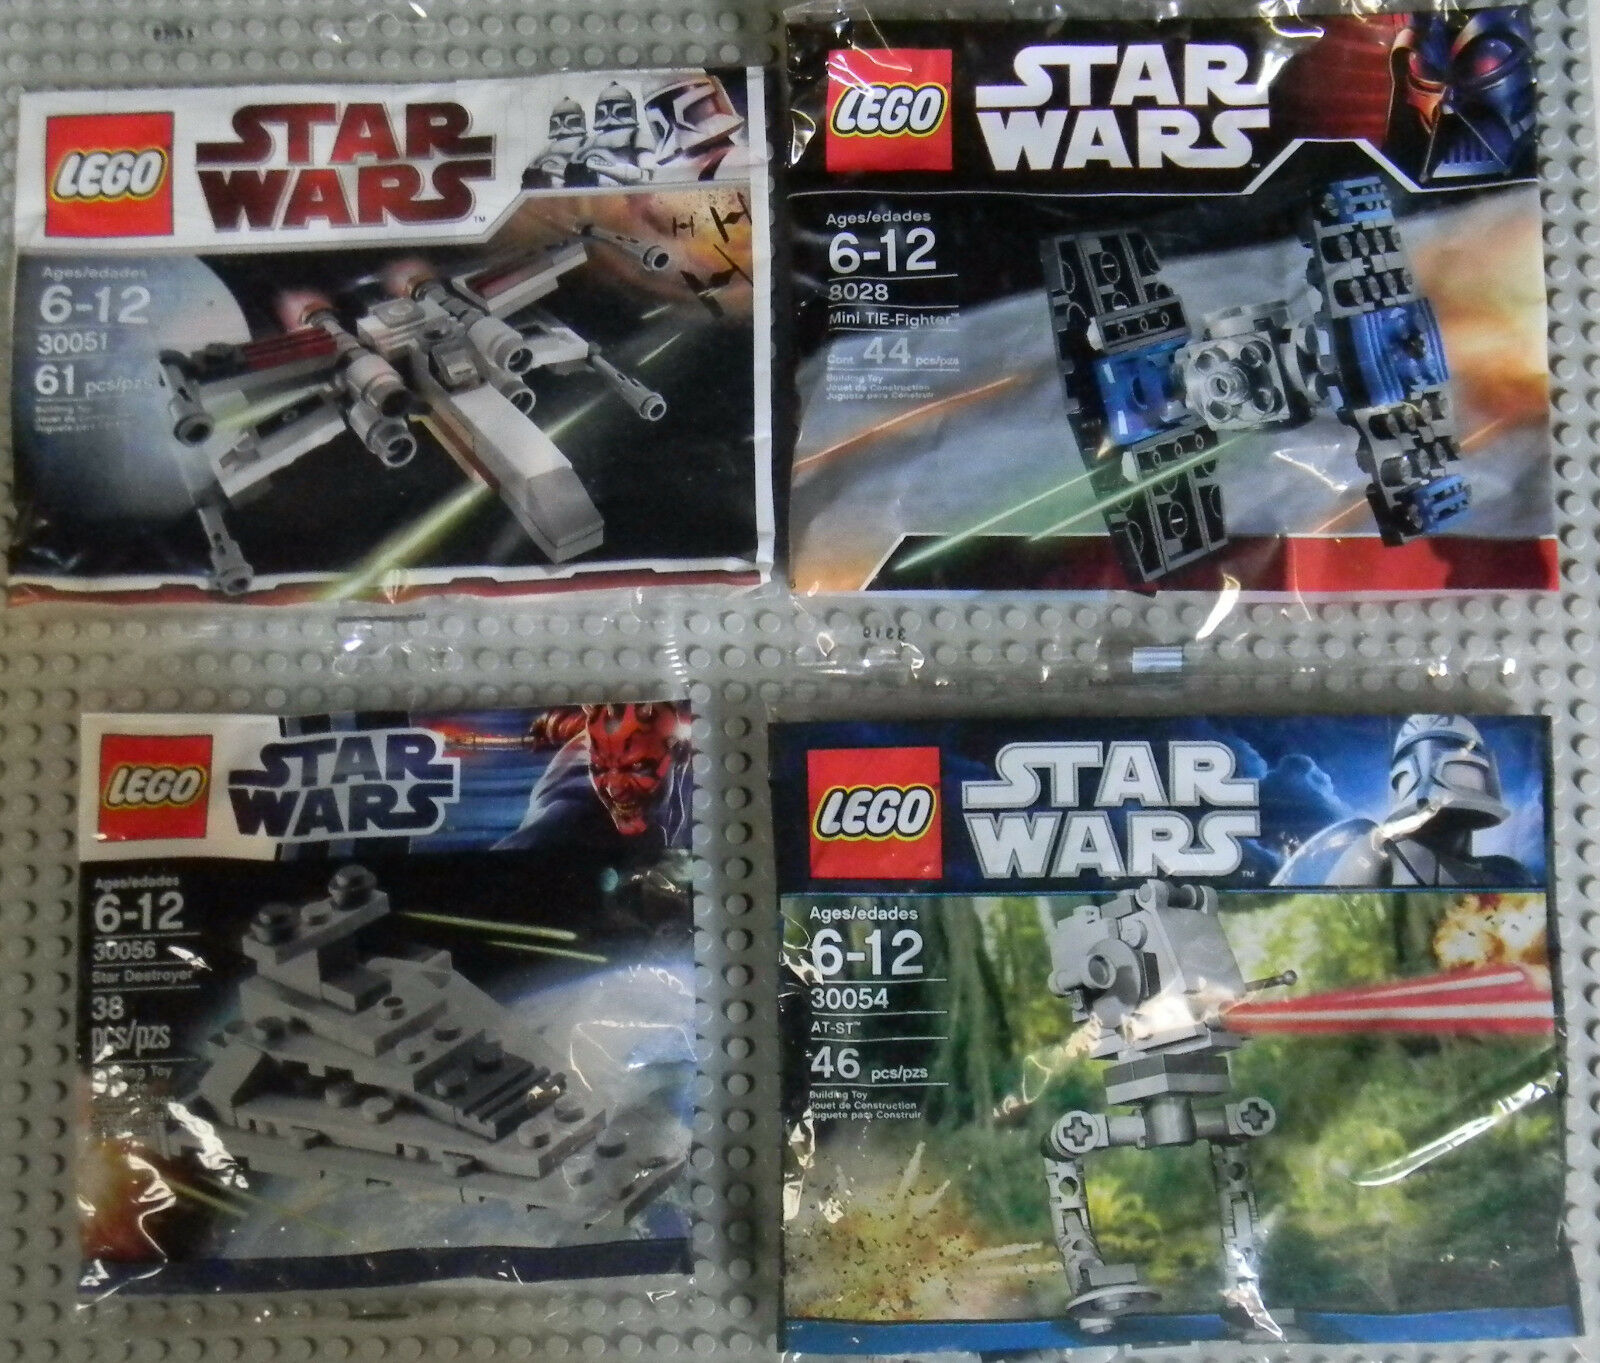 Lego Star Wars Minis 30051 30056 8028 30054 X-Wing Tie Fighter Destroyer AT-ST